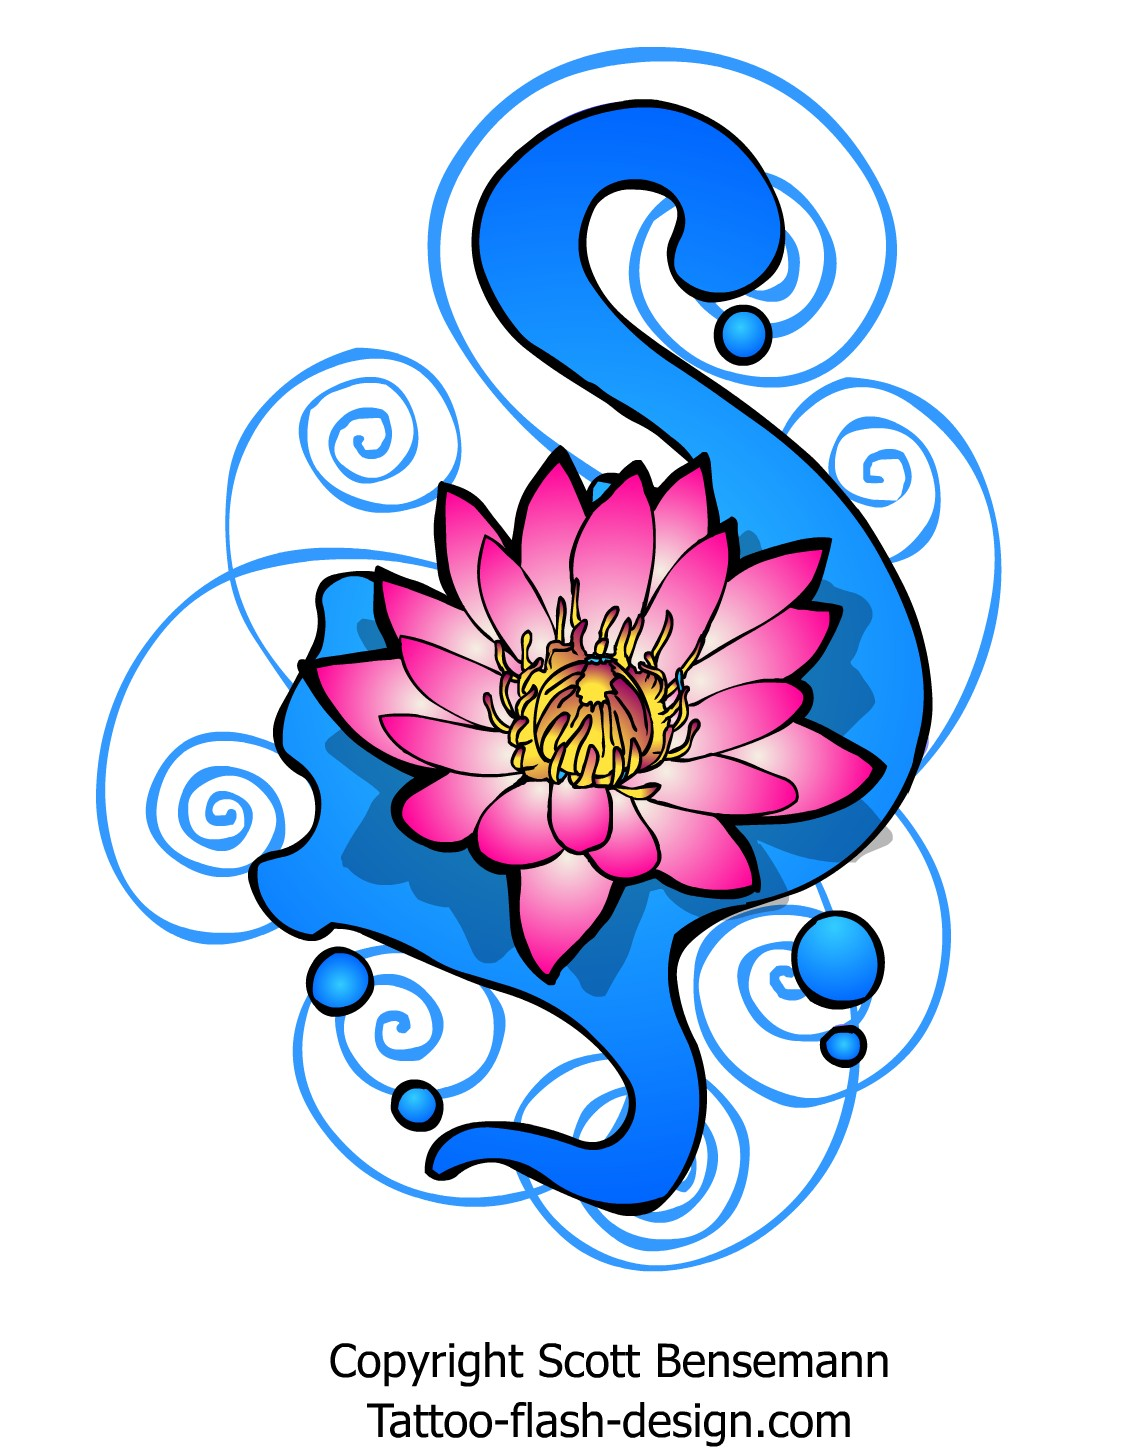 Pink tribal lotus flower tattoo design pink lotus flower tattoo design izmirmasajfo